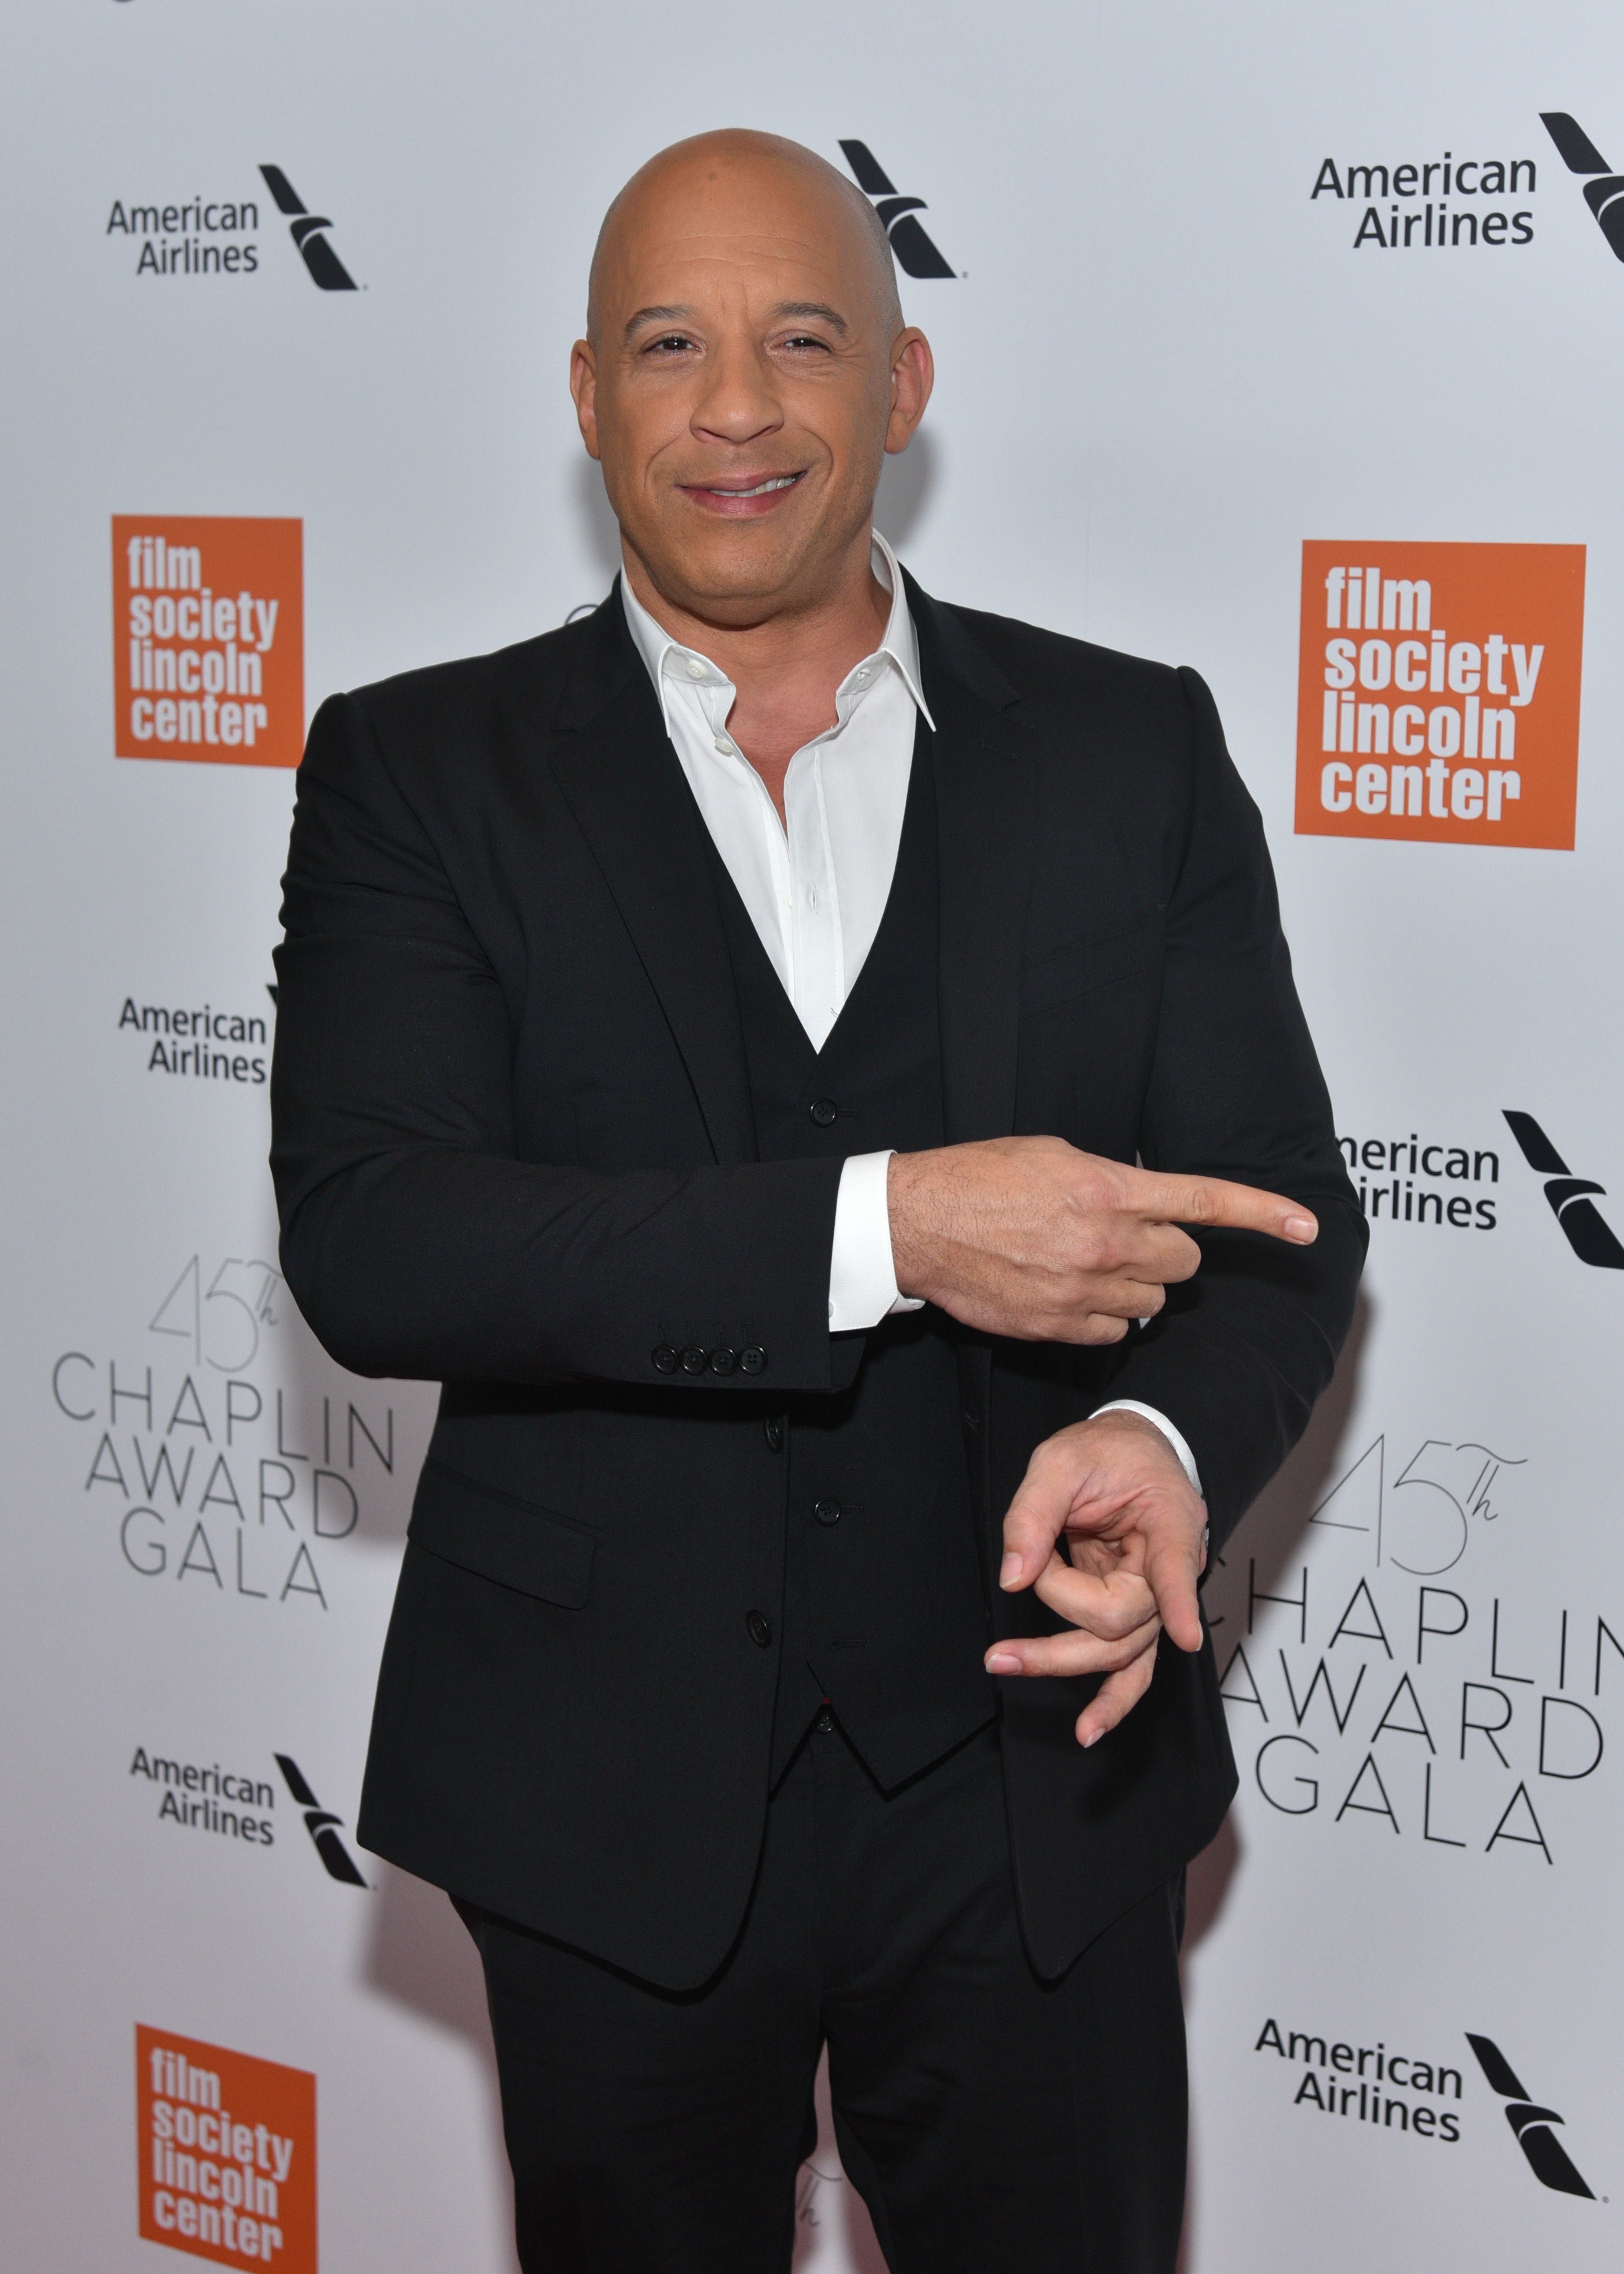 Vin Diesel appears at the Film Society of Lincoln Center's 45th Chaplin Award Gala in New York City on April 30, 2018.